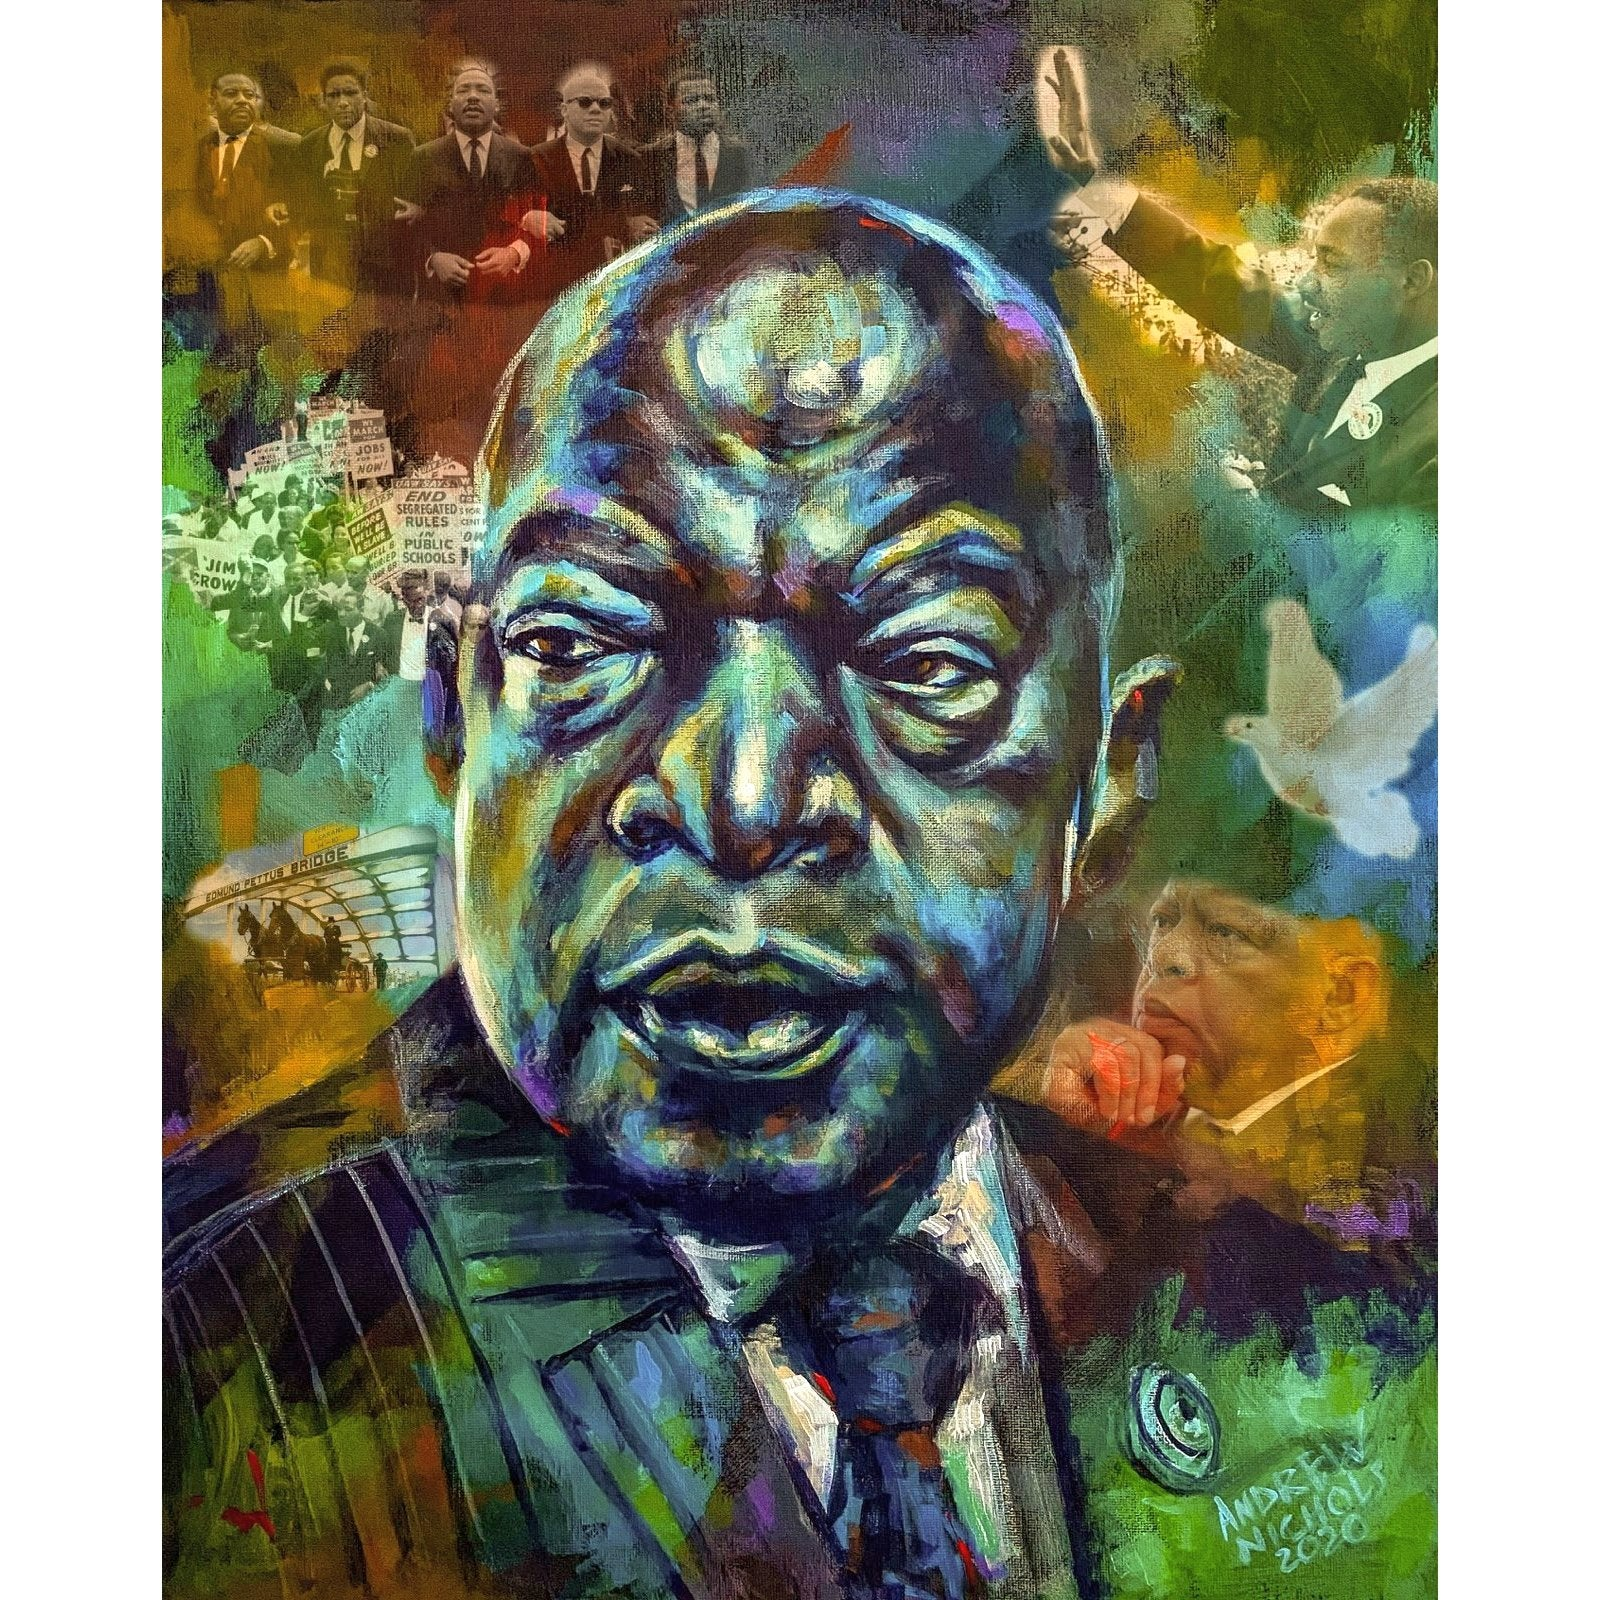 John Lewis: Conscience of the Congress by Andrew Nichols